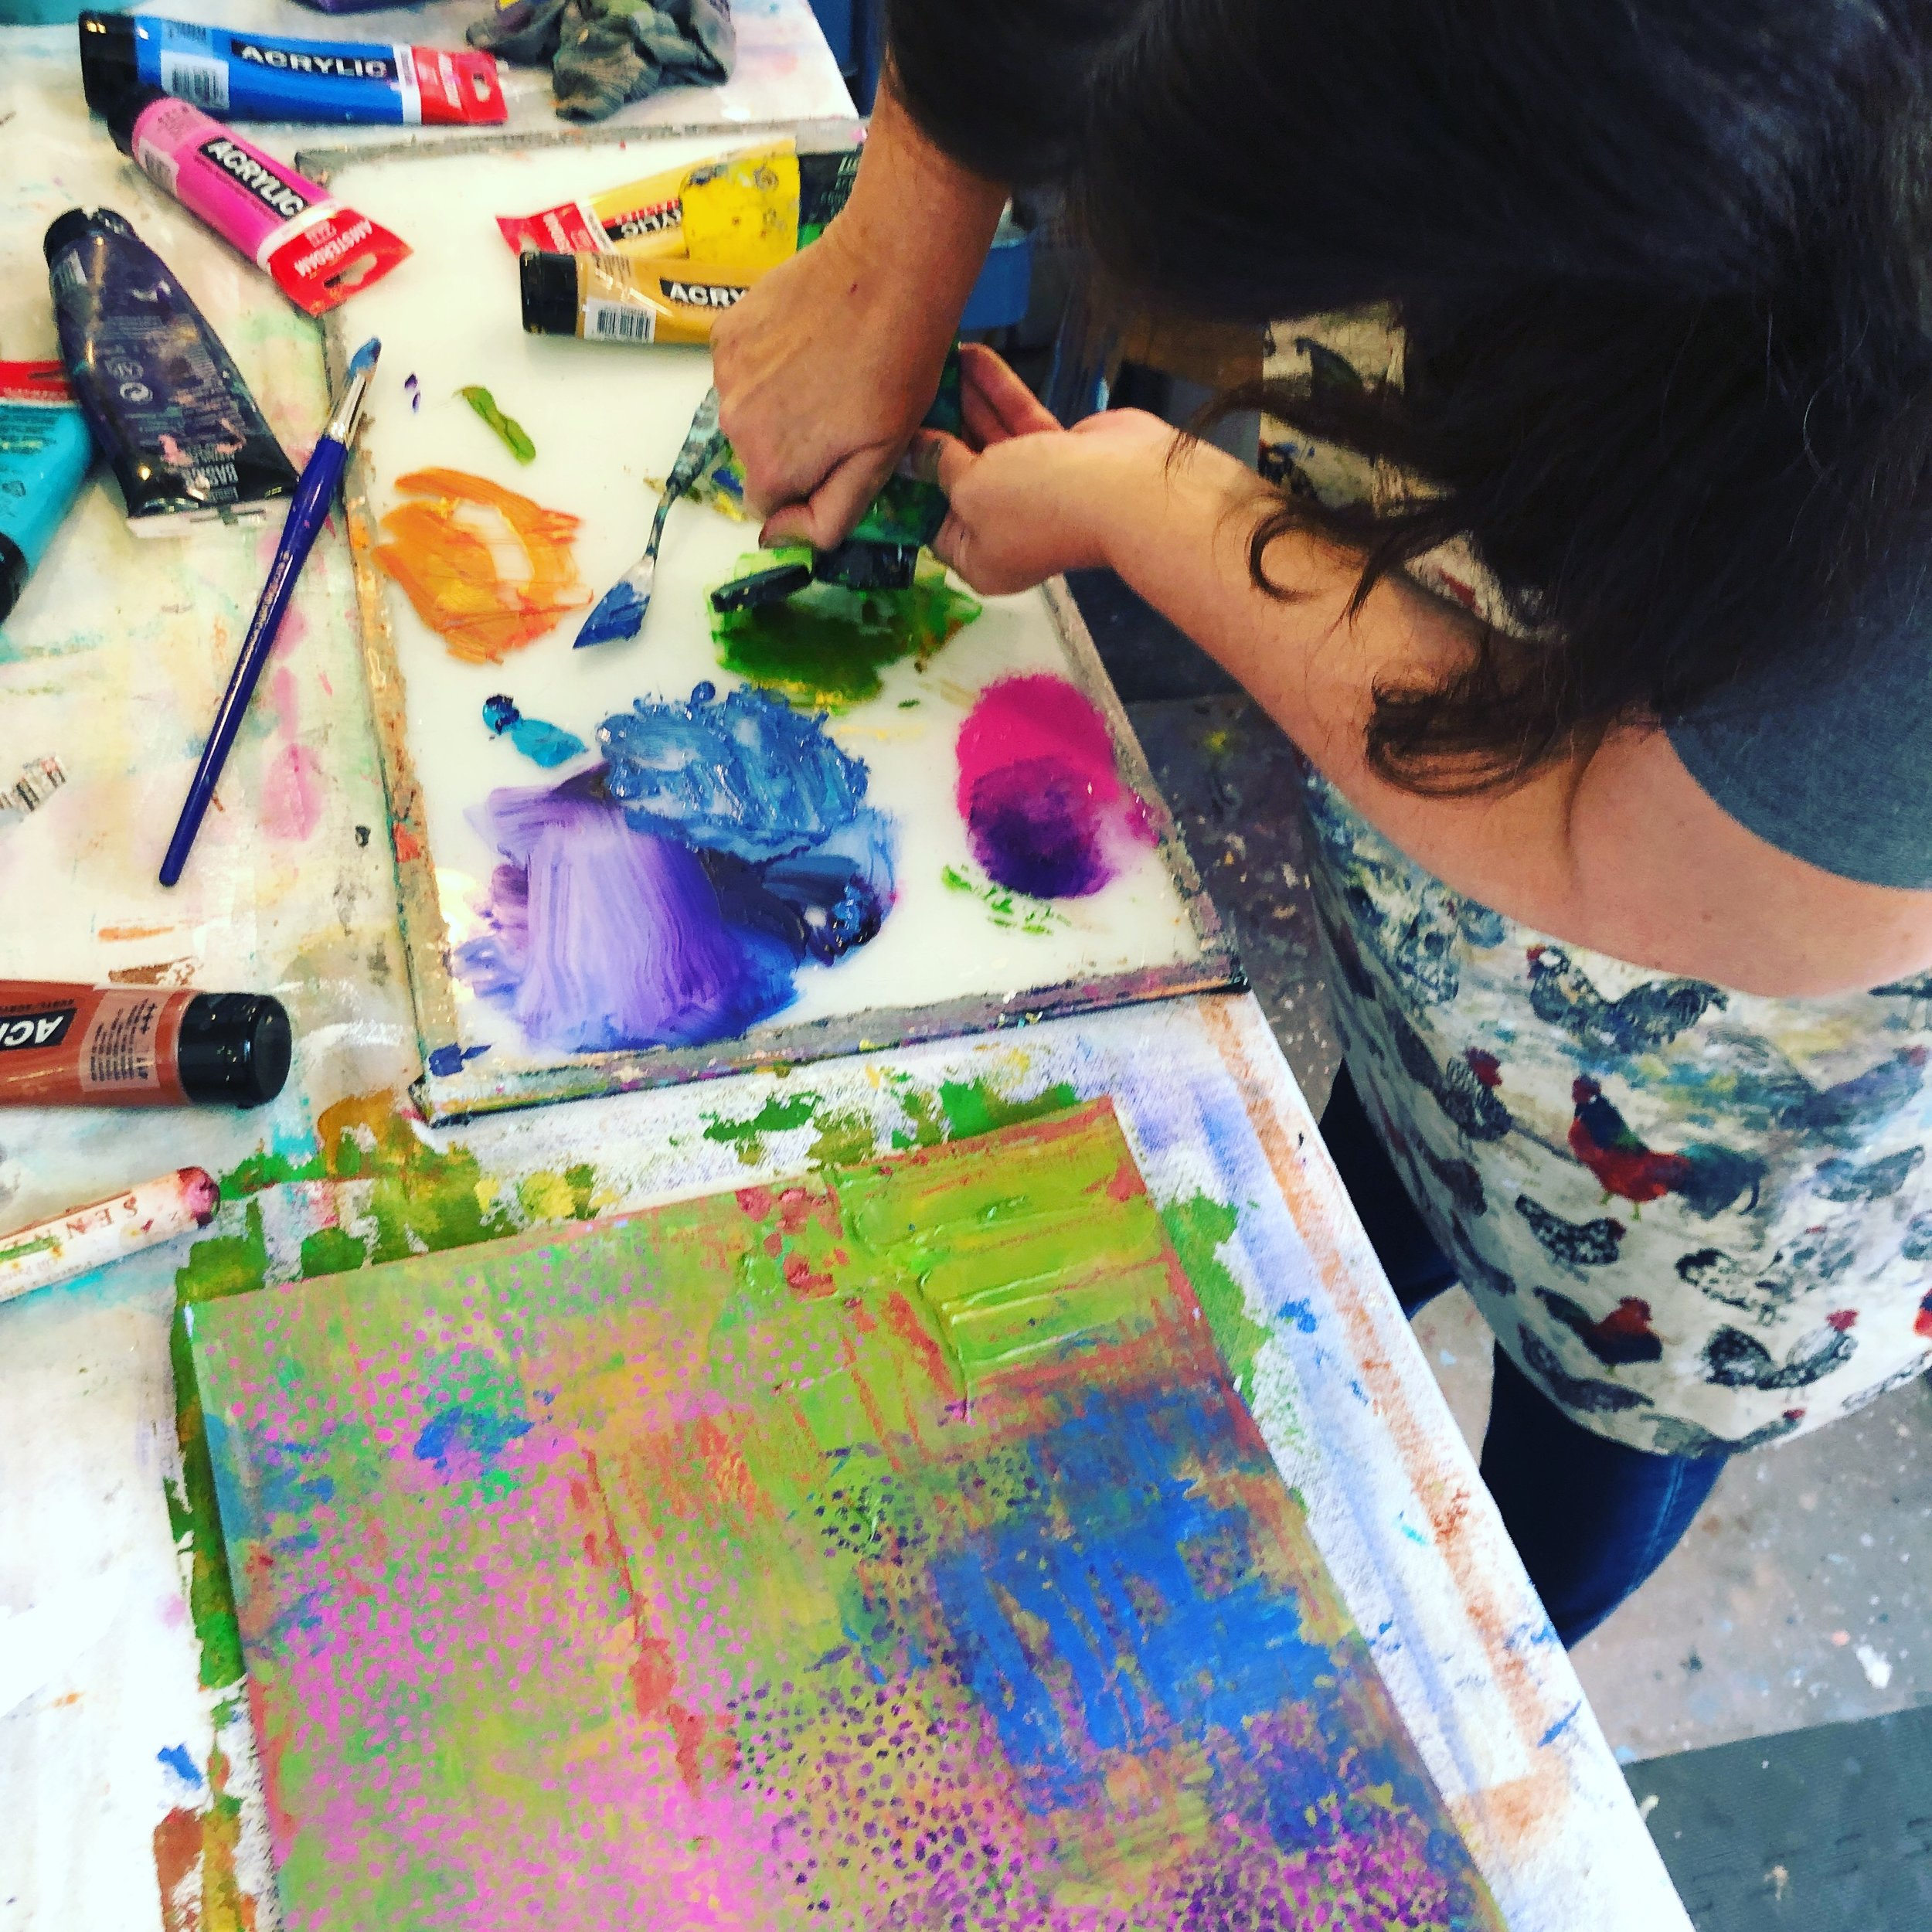 A student pushing the boundaries in her process by covering up areas with stencils and big blocks of color.